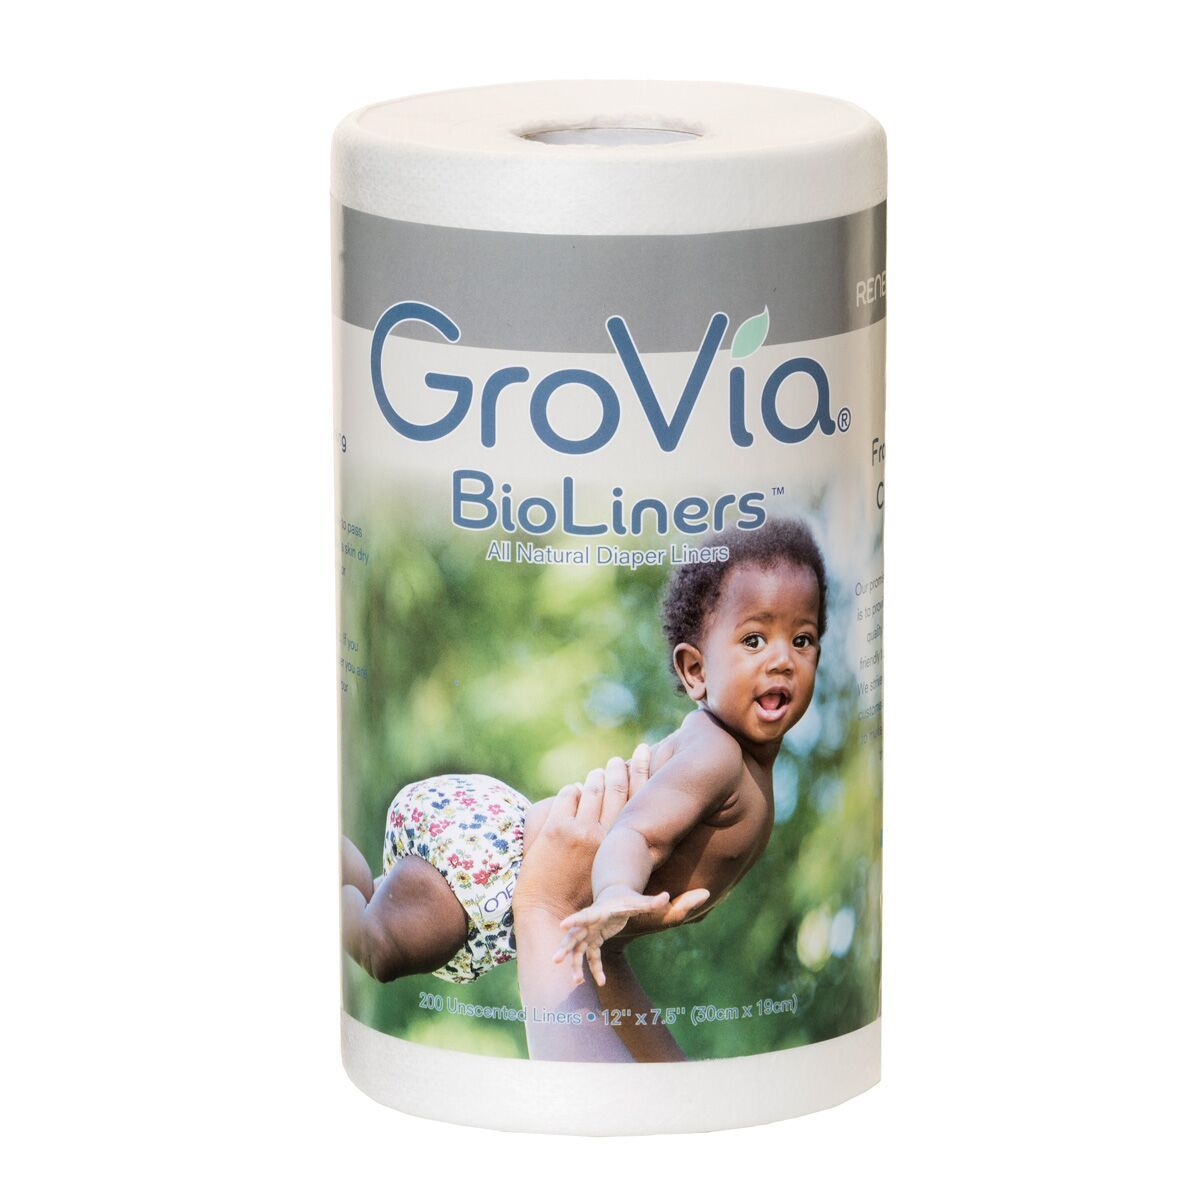 GroVia Bioliners (roll of 200)